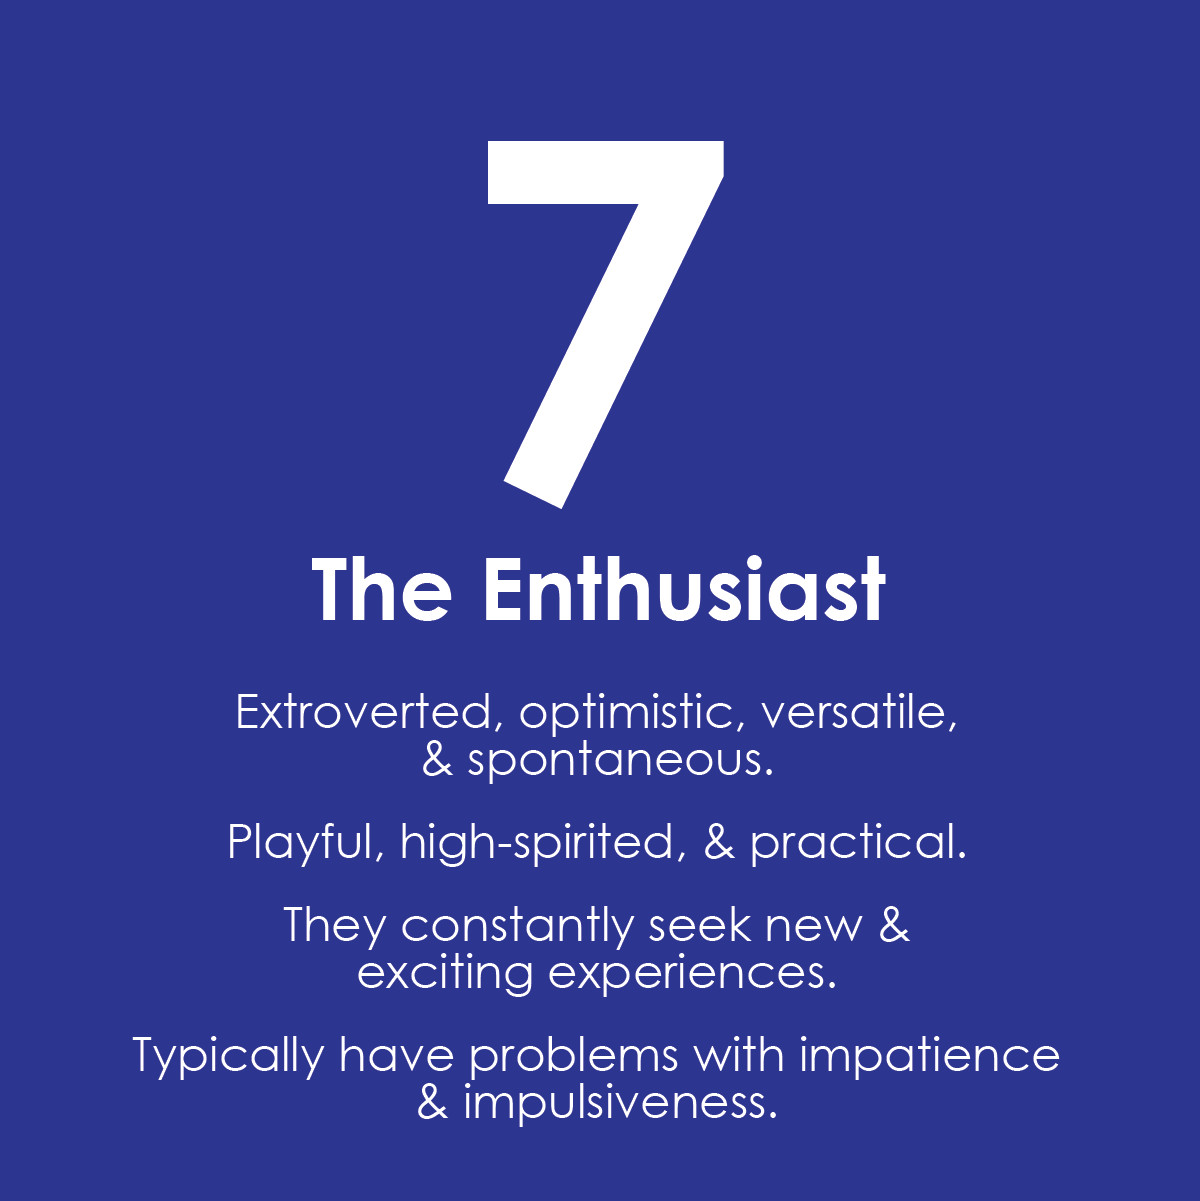 Enneagram 7: The Enthusiast